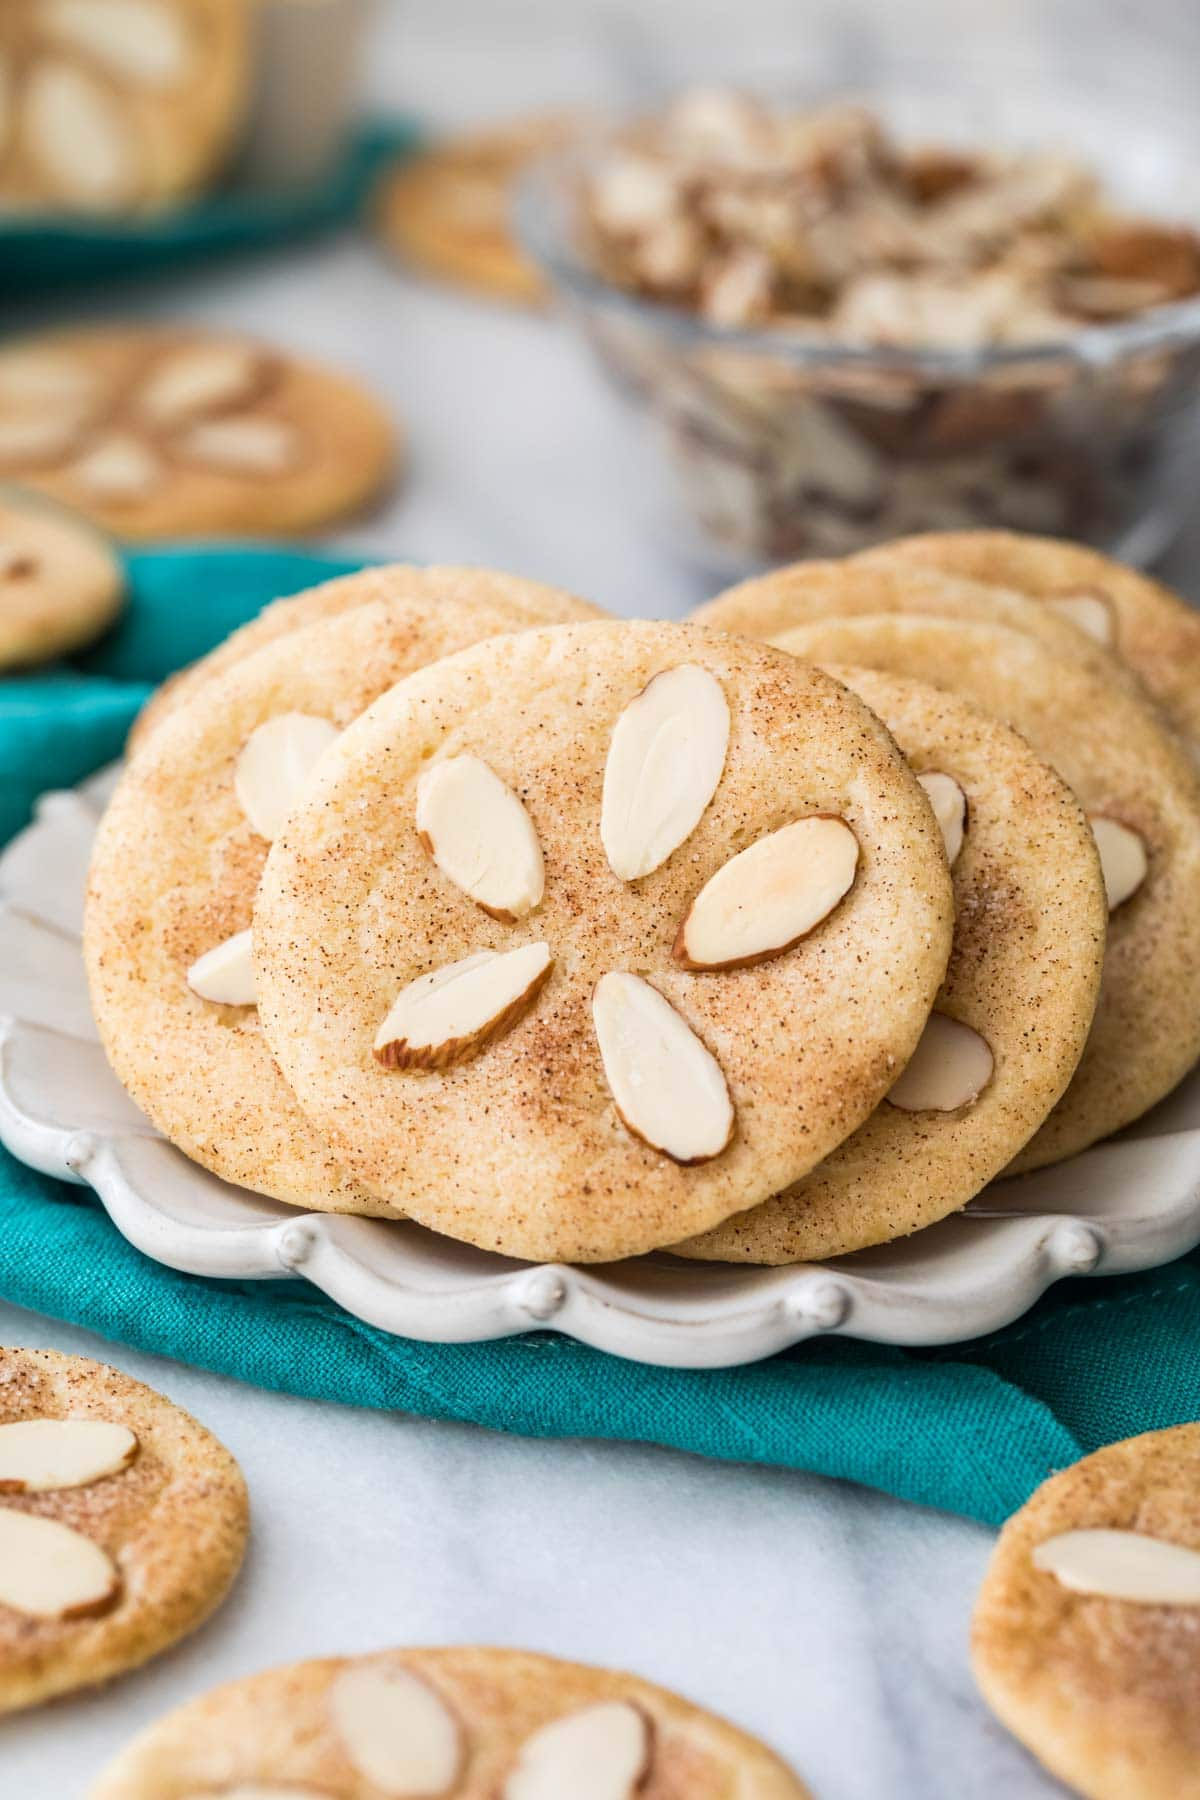 Cookies decorated with almond slivers to look like sand dollars on white plate